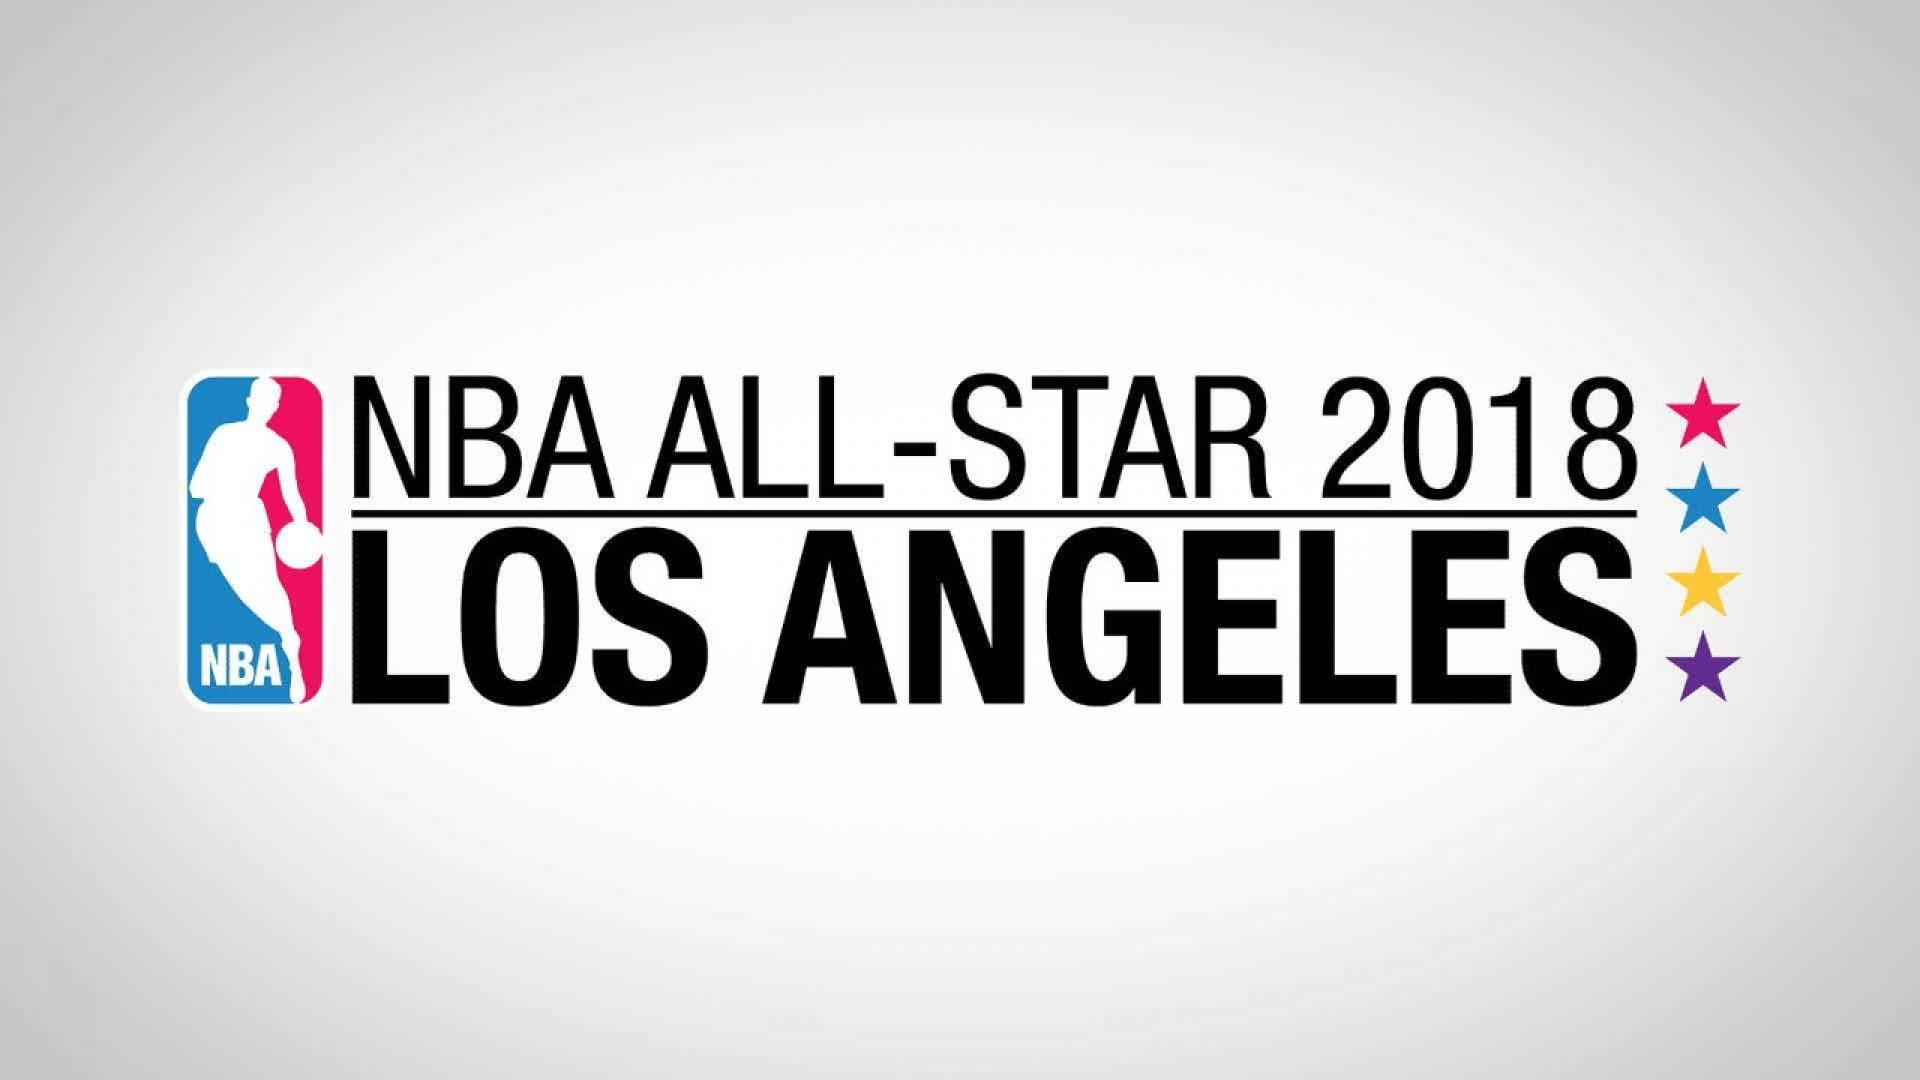 James retrouve Irving, Curry choisit Harden — All Star Game